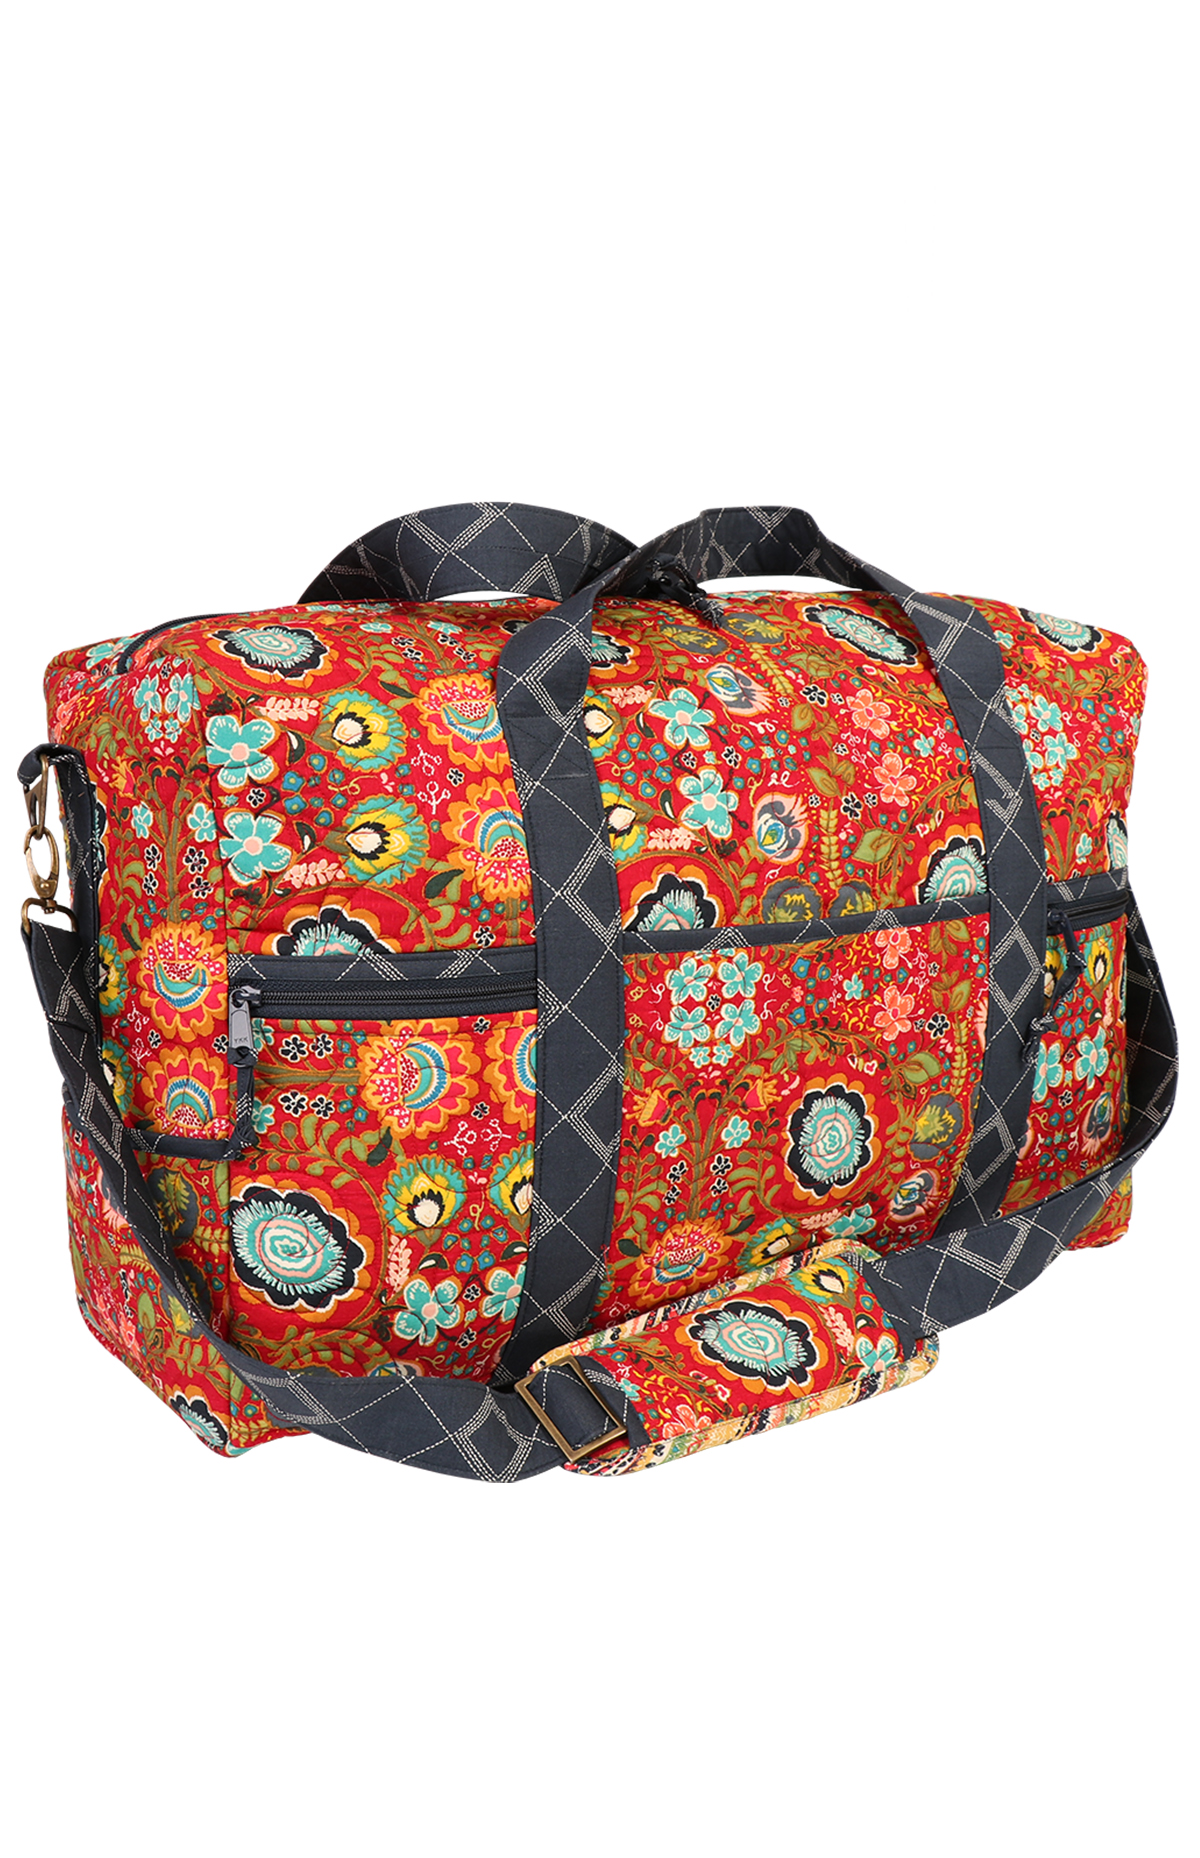 Travel Duffle Bag 2.0 b7c555e6a1c1b